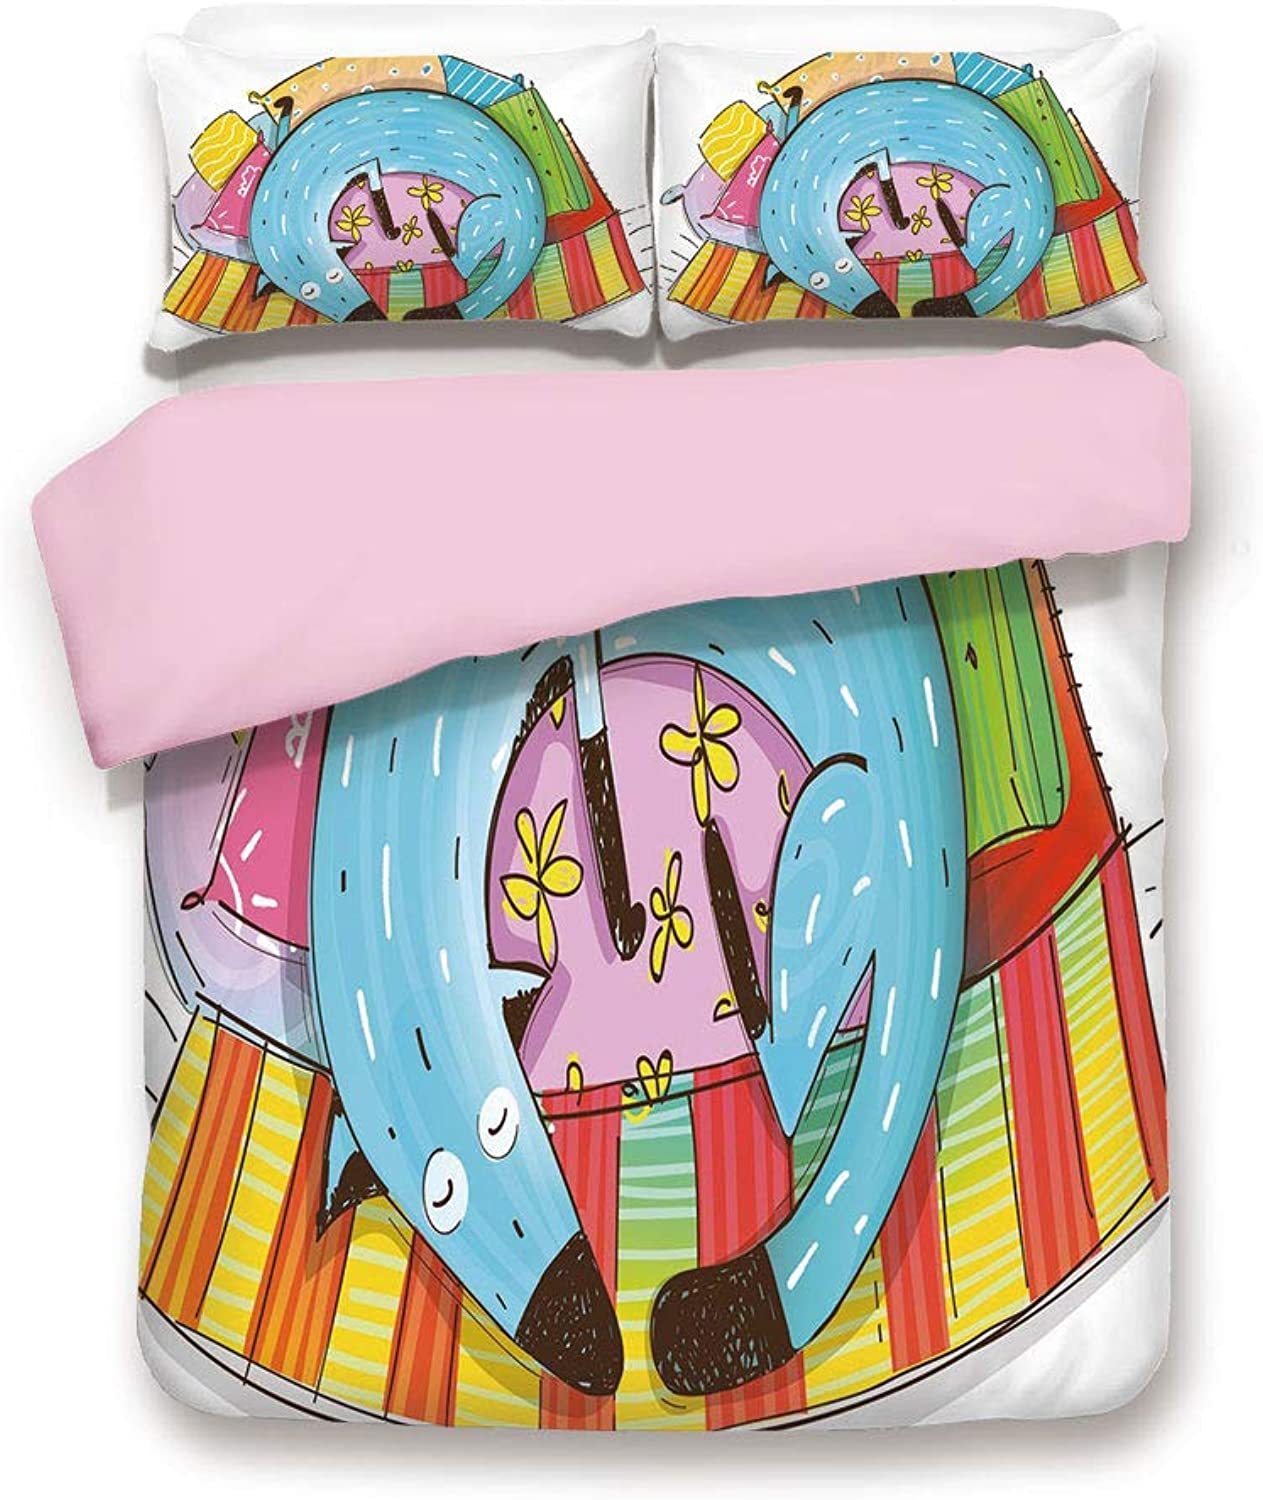 Pink Duvet Cover Set,Queen Size,Cute Dog Sleeping on colorful Pillows Funny Domestic Pet Animal Caricature Decorative,Decorative 3 Piece Bedding Set with 2 Pillow Sham,Best Gift For Girls Women,Multic